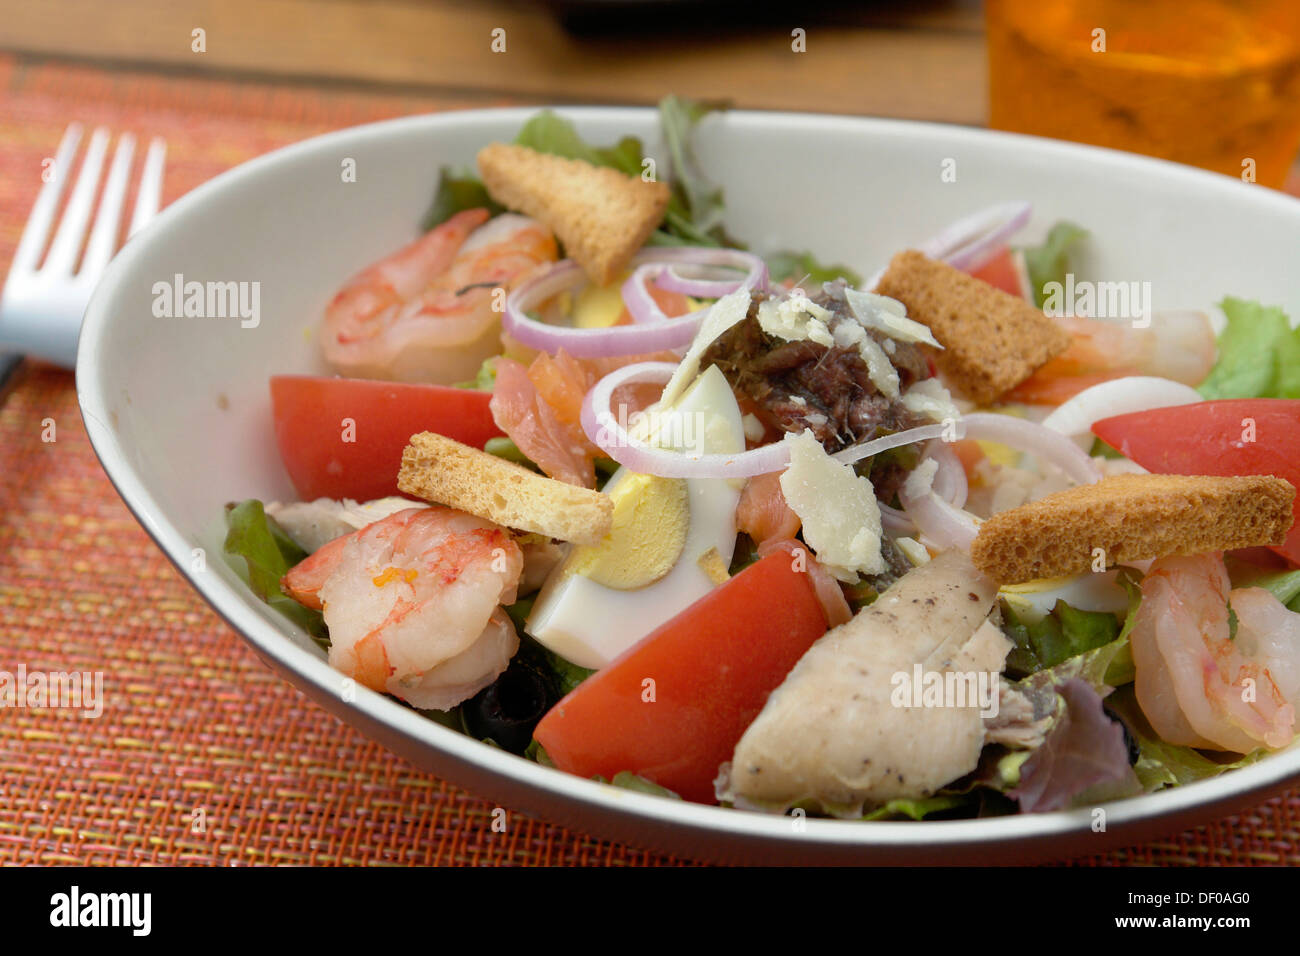 Cesar Salad with lettuce, tuna, anchovies, shrimp, tomato, egg, Parmesan cheese, onions and croutons - Stock Image